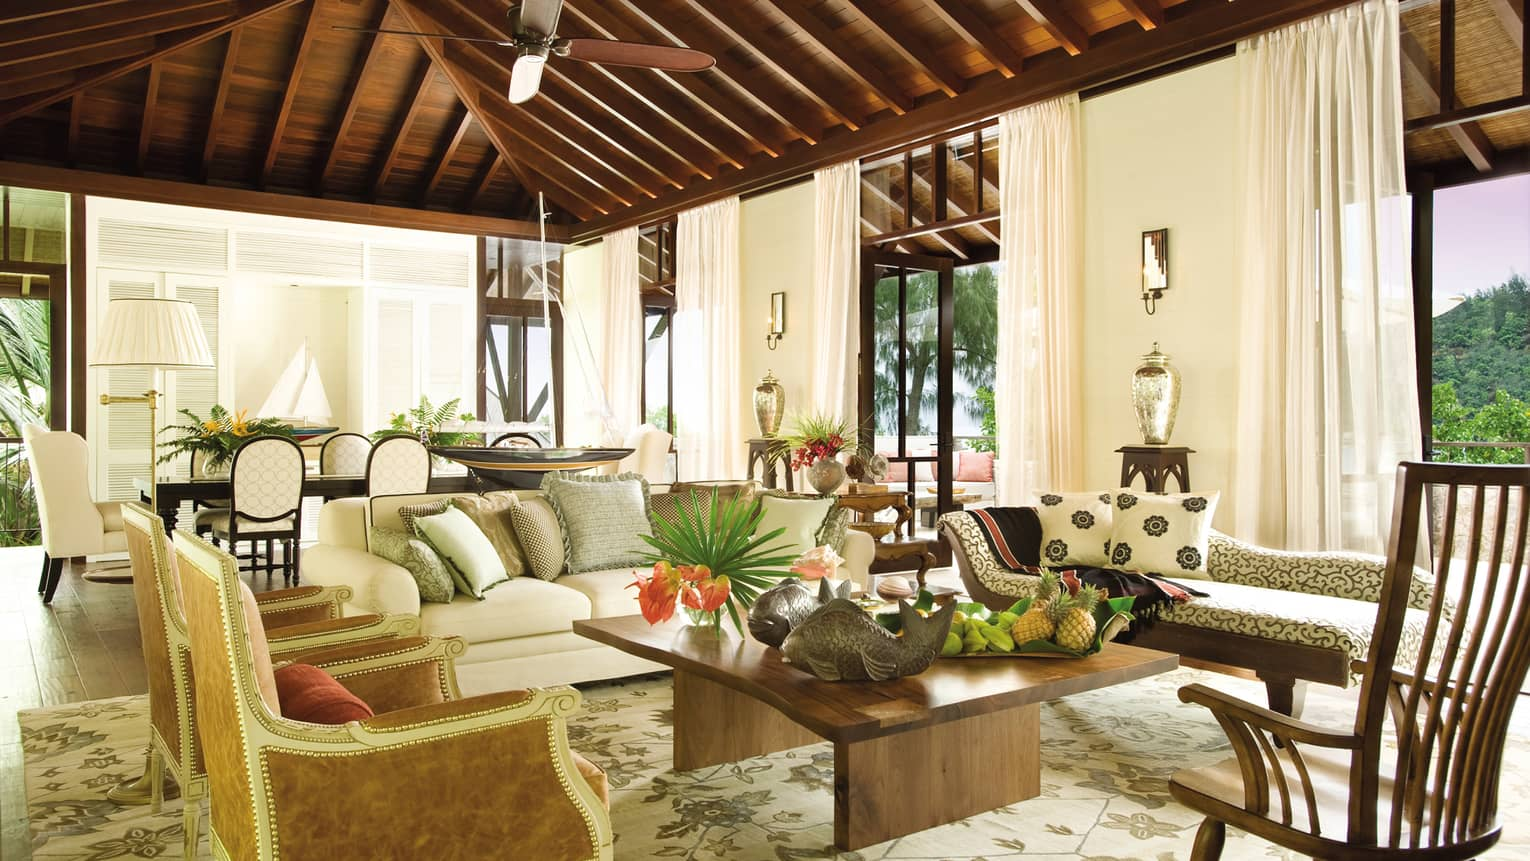 Three-bedroom Beach Suite bright living room with white sofas and elegant chairs, wood beam roof